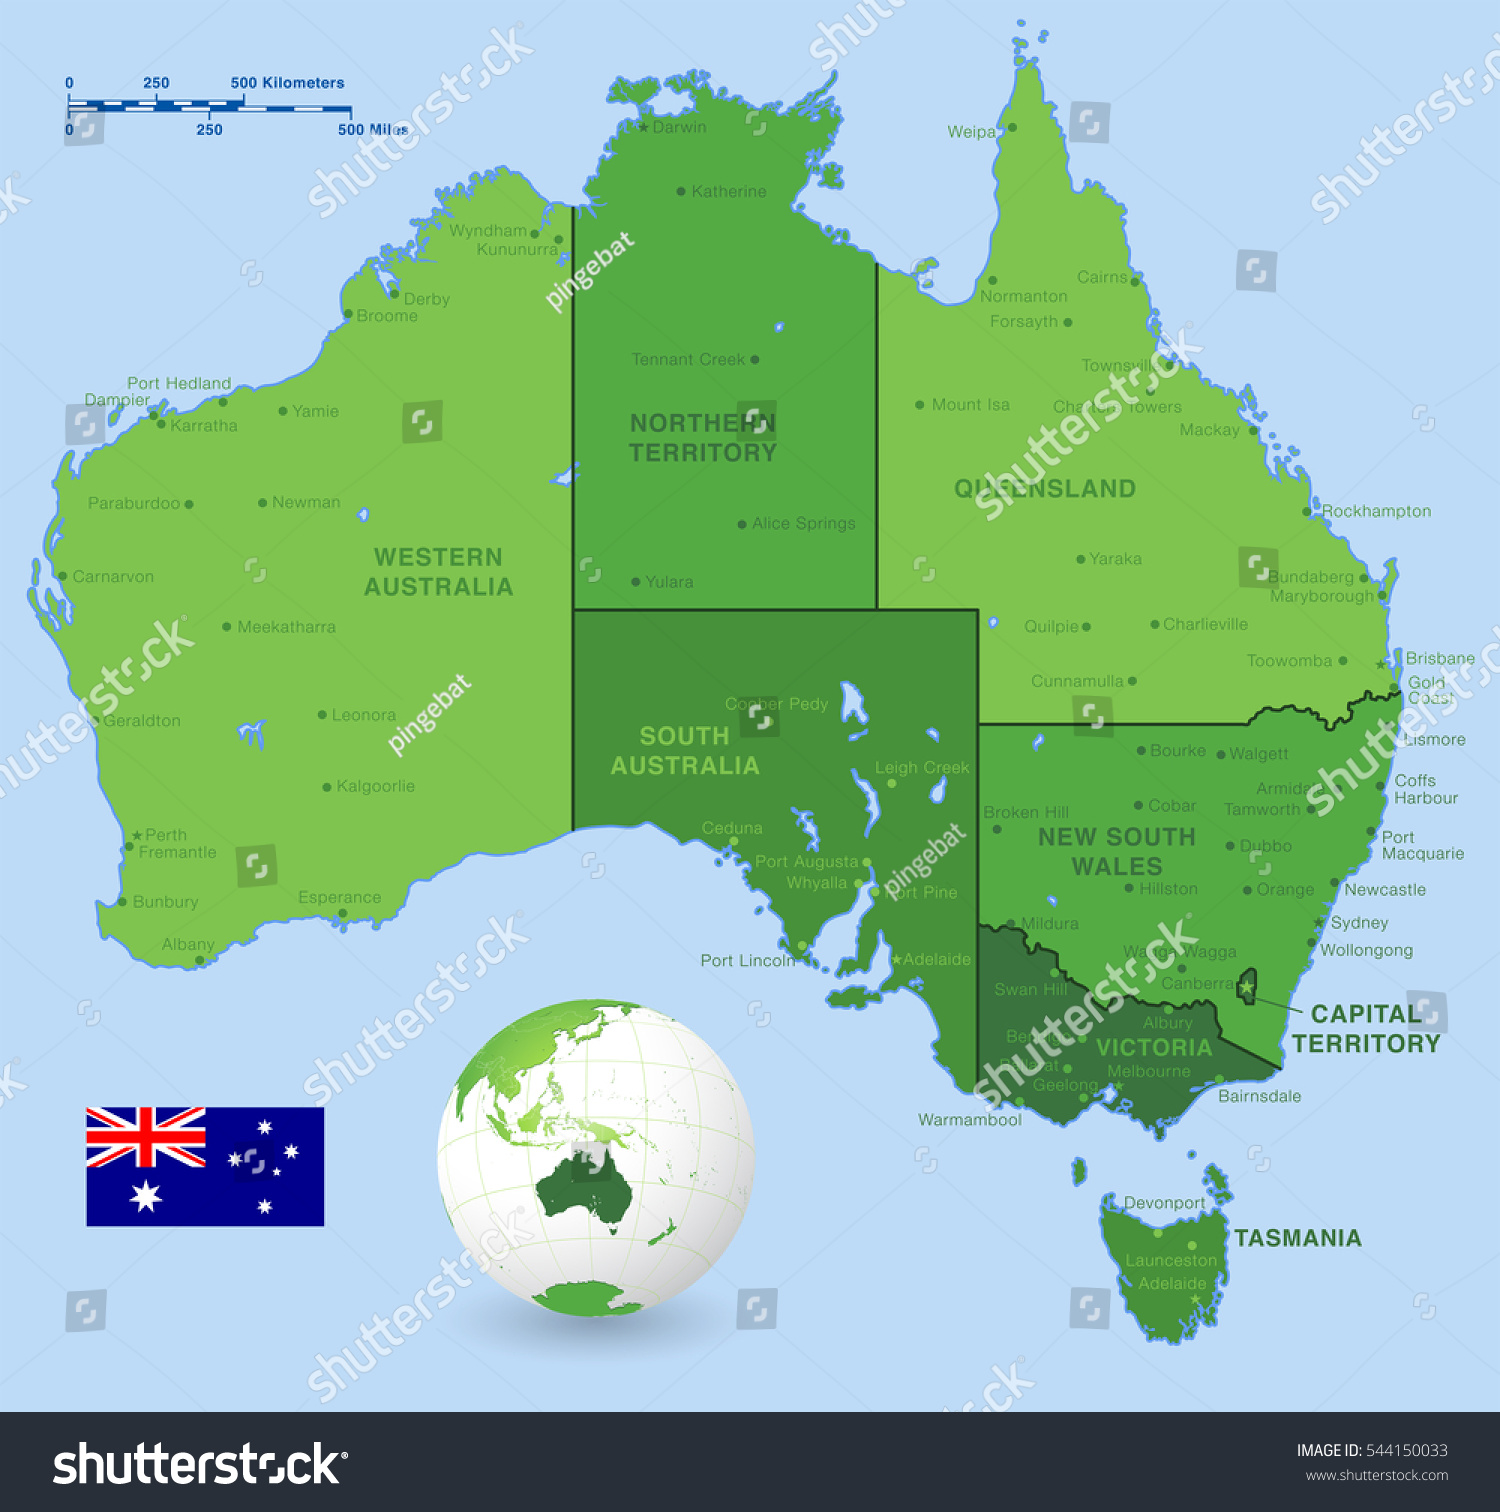 a green high detail vector map of australia states and major cities with a 3d